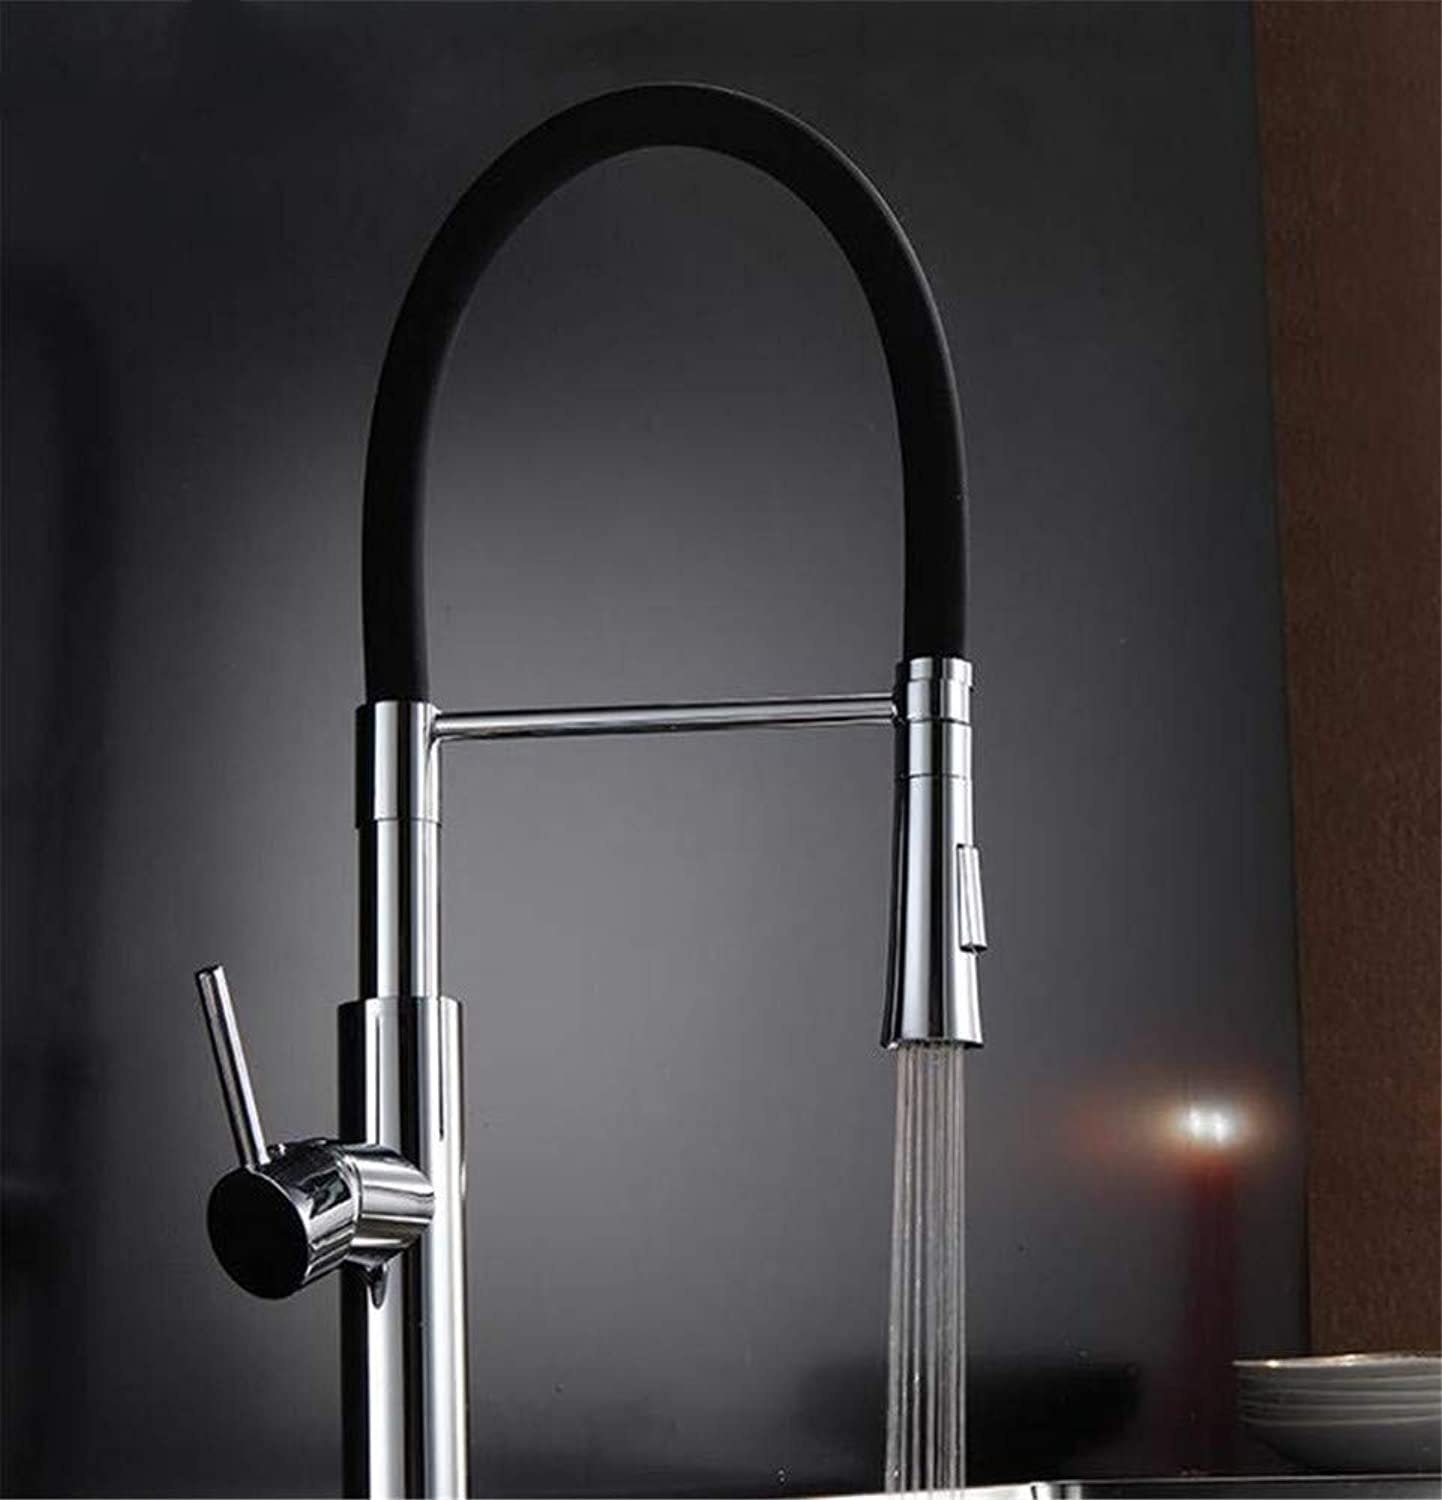 360° redating Faucet Retro Faucetkitchen Faucet Cold and Hot Water Mixer Tap Kitchen Sink Faucet